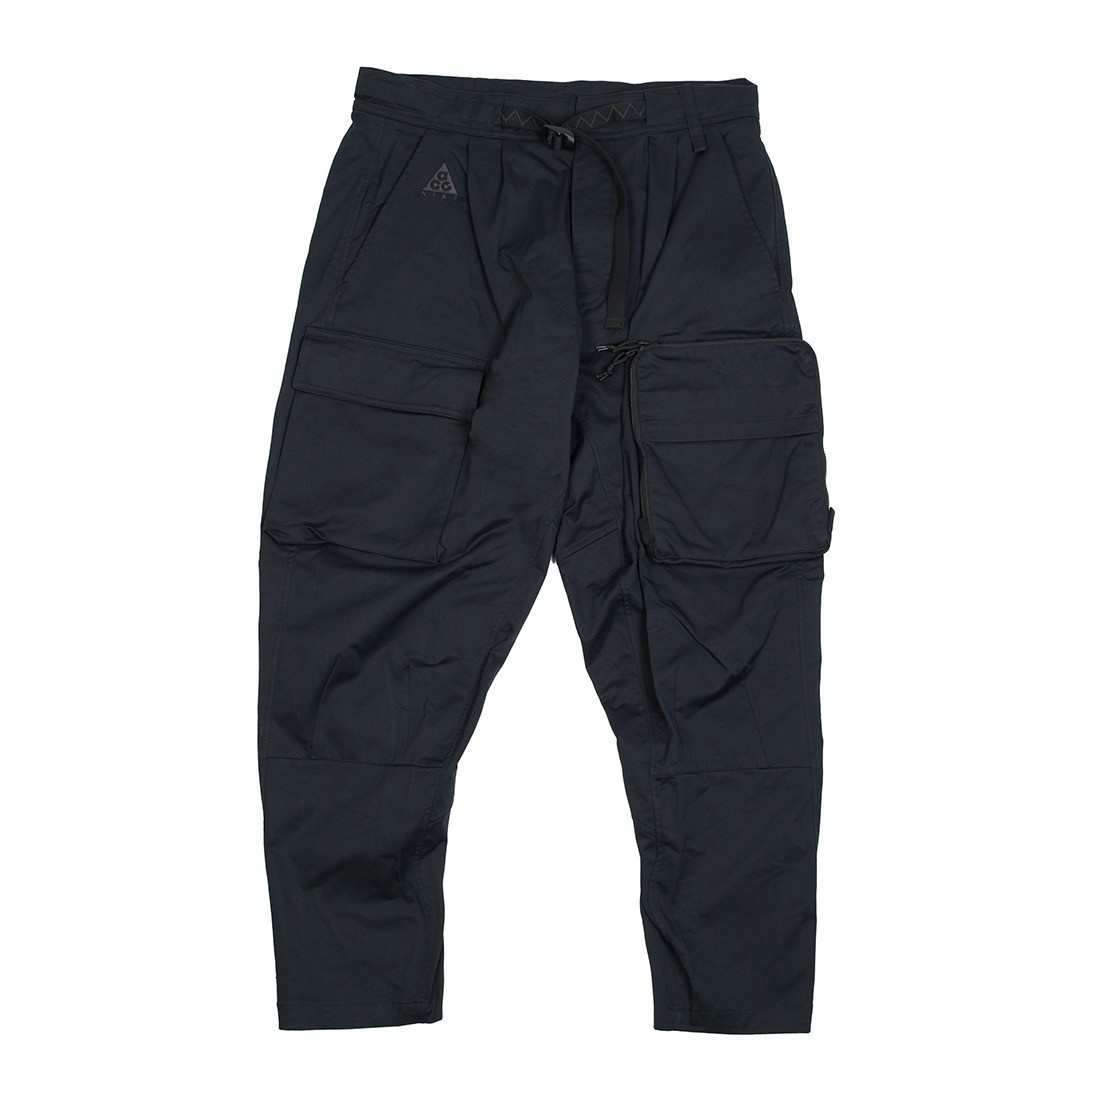 differently how to buy authorized site Nike Men Nrg Acg Woven Cargo Pants (black)